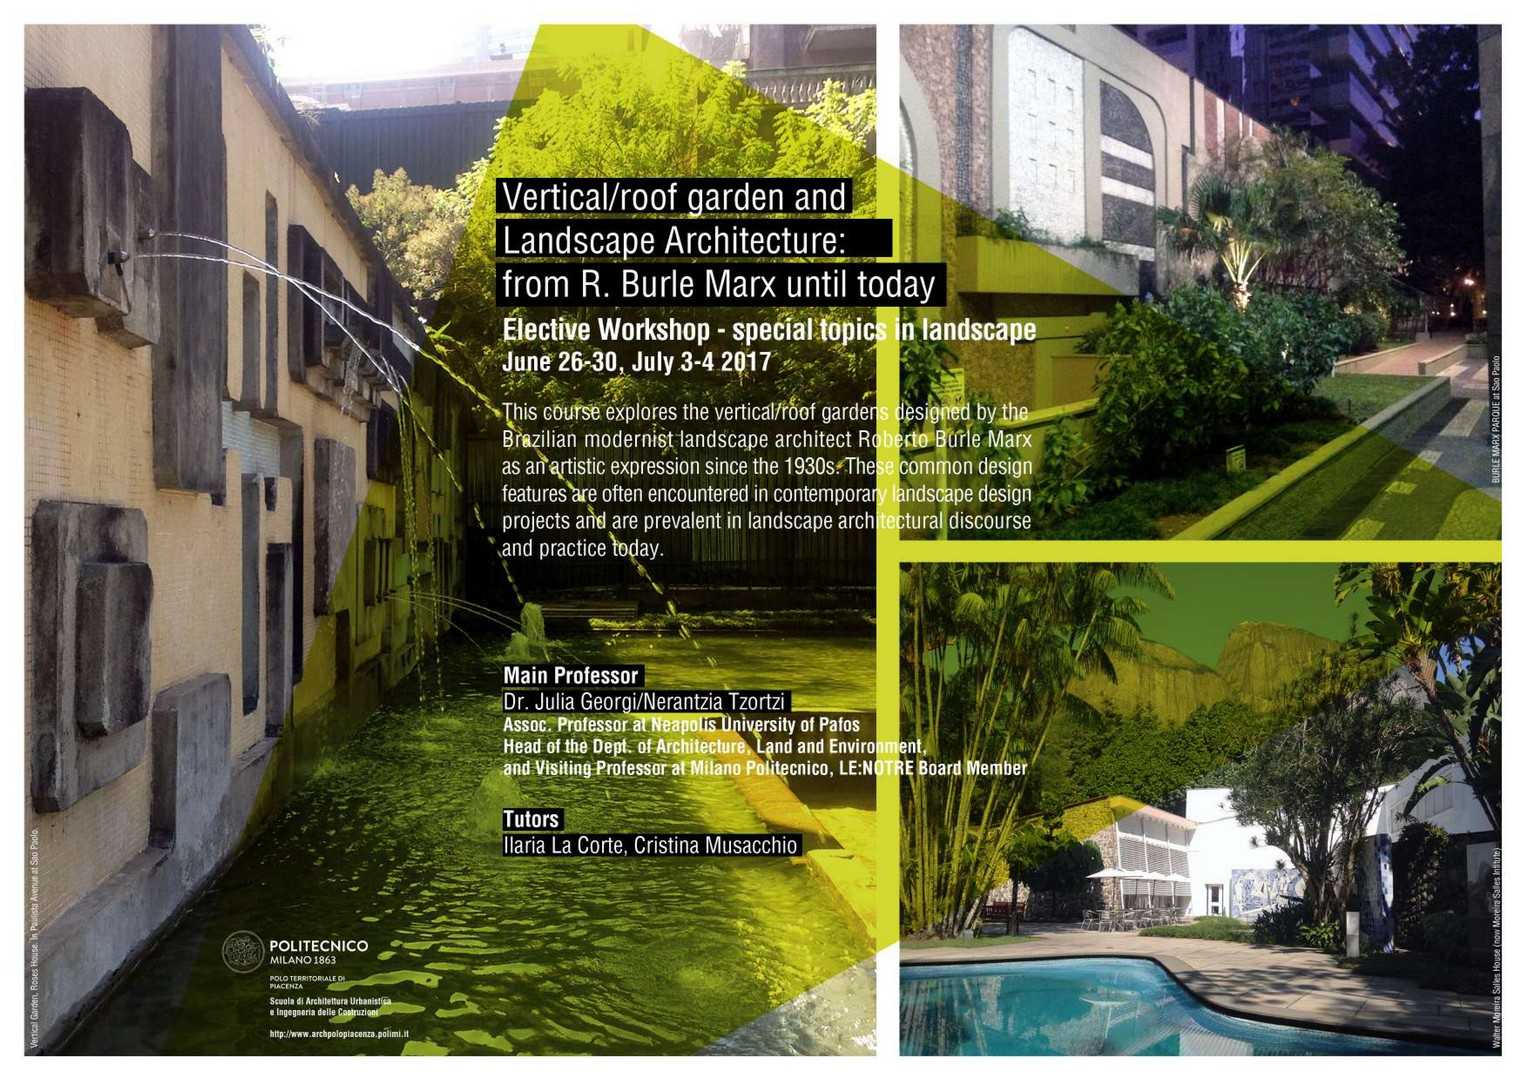 Elective Workshop: from R. Burle Marx until today